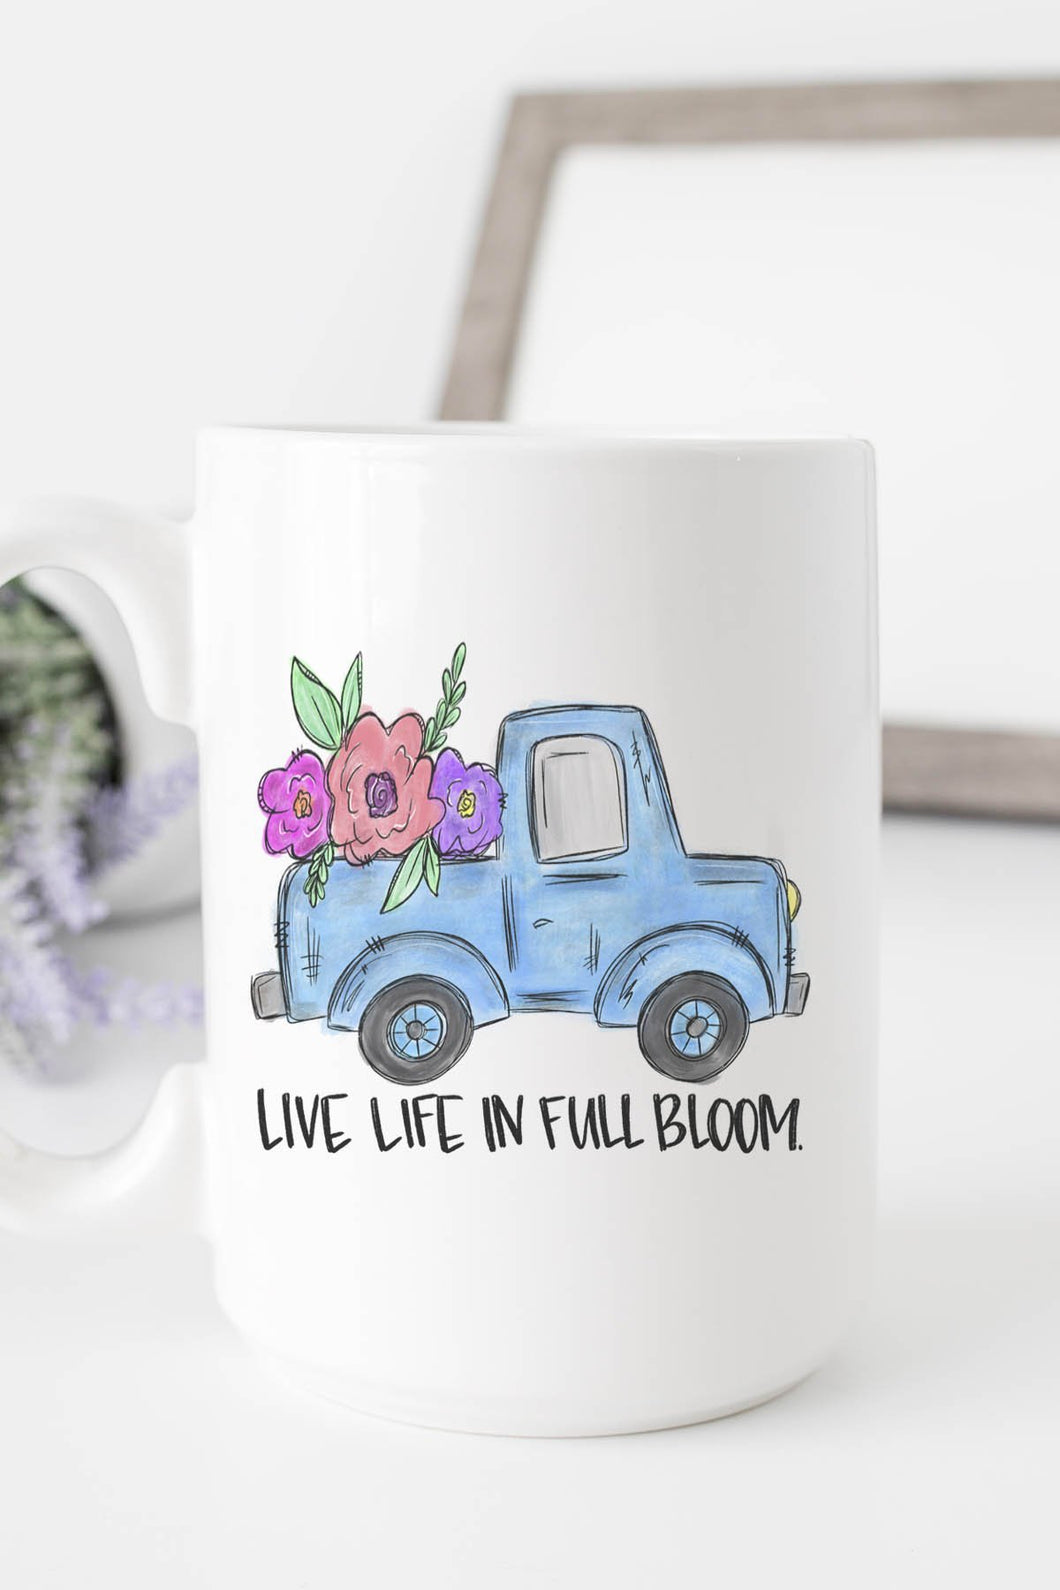 Life Life in Full Bloom Coffee Tea Mug Cup